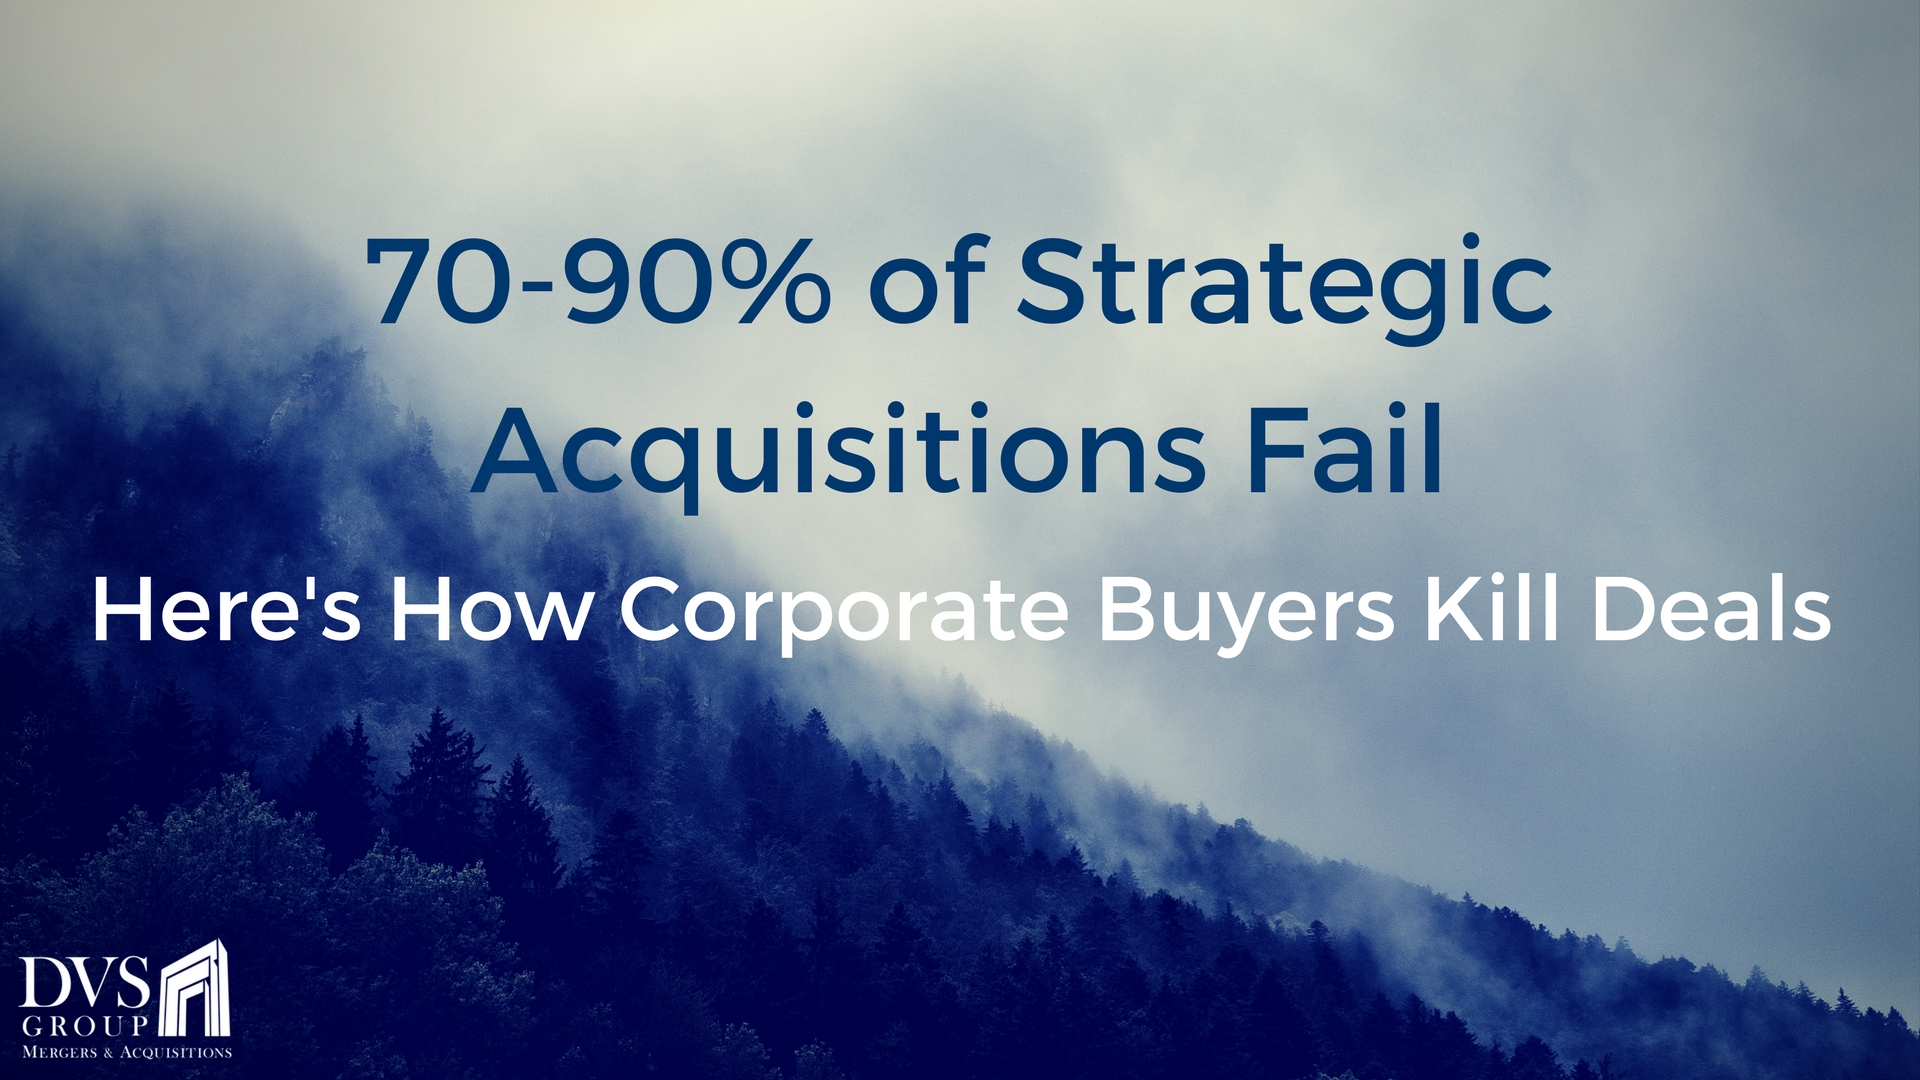 70-90% of Strategic Acquisitions Fail - Here's How Corporate Buyers Kill Deals